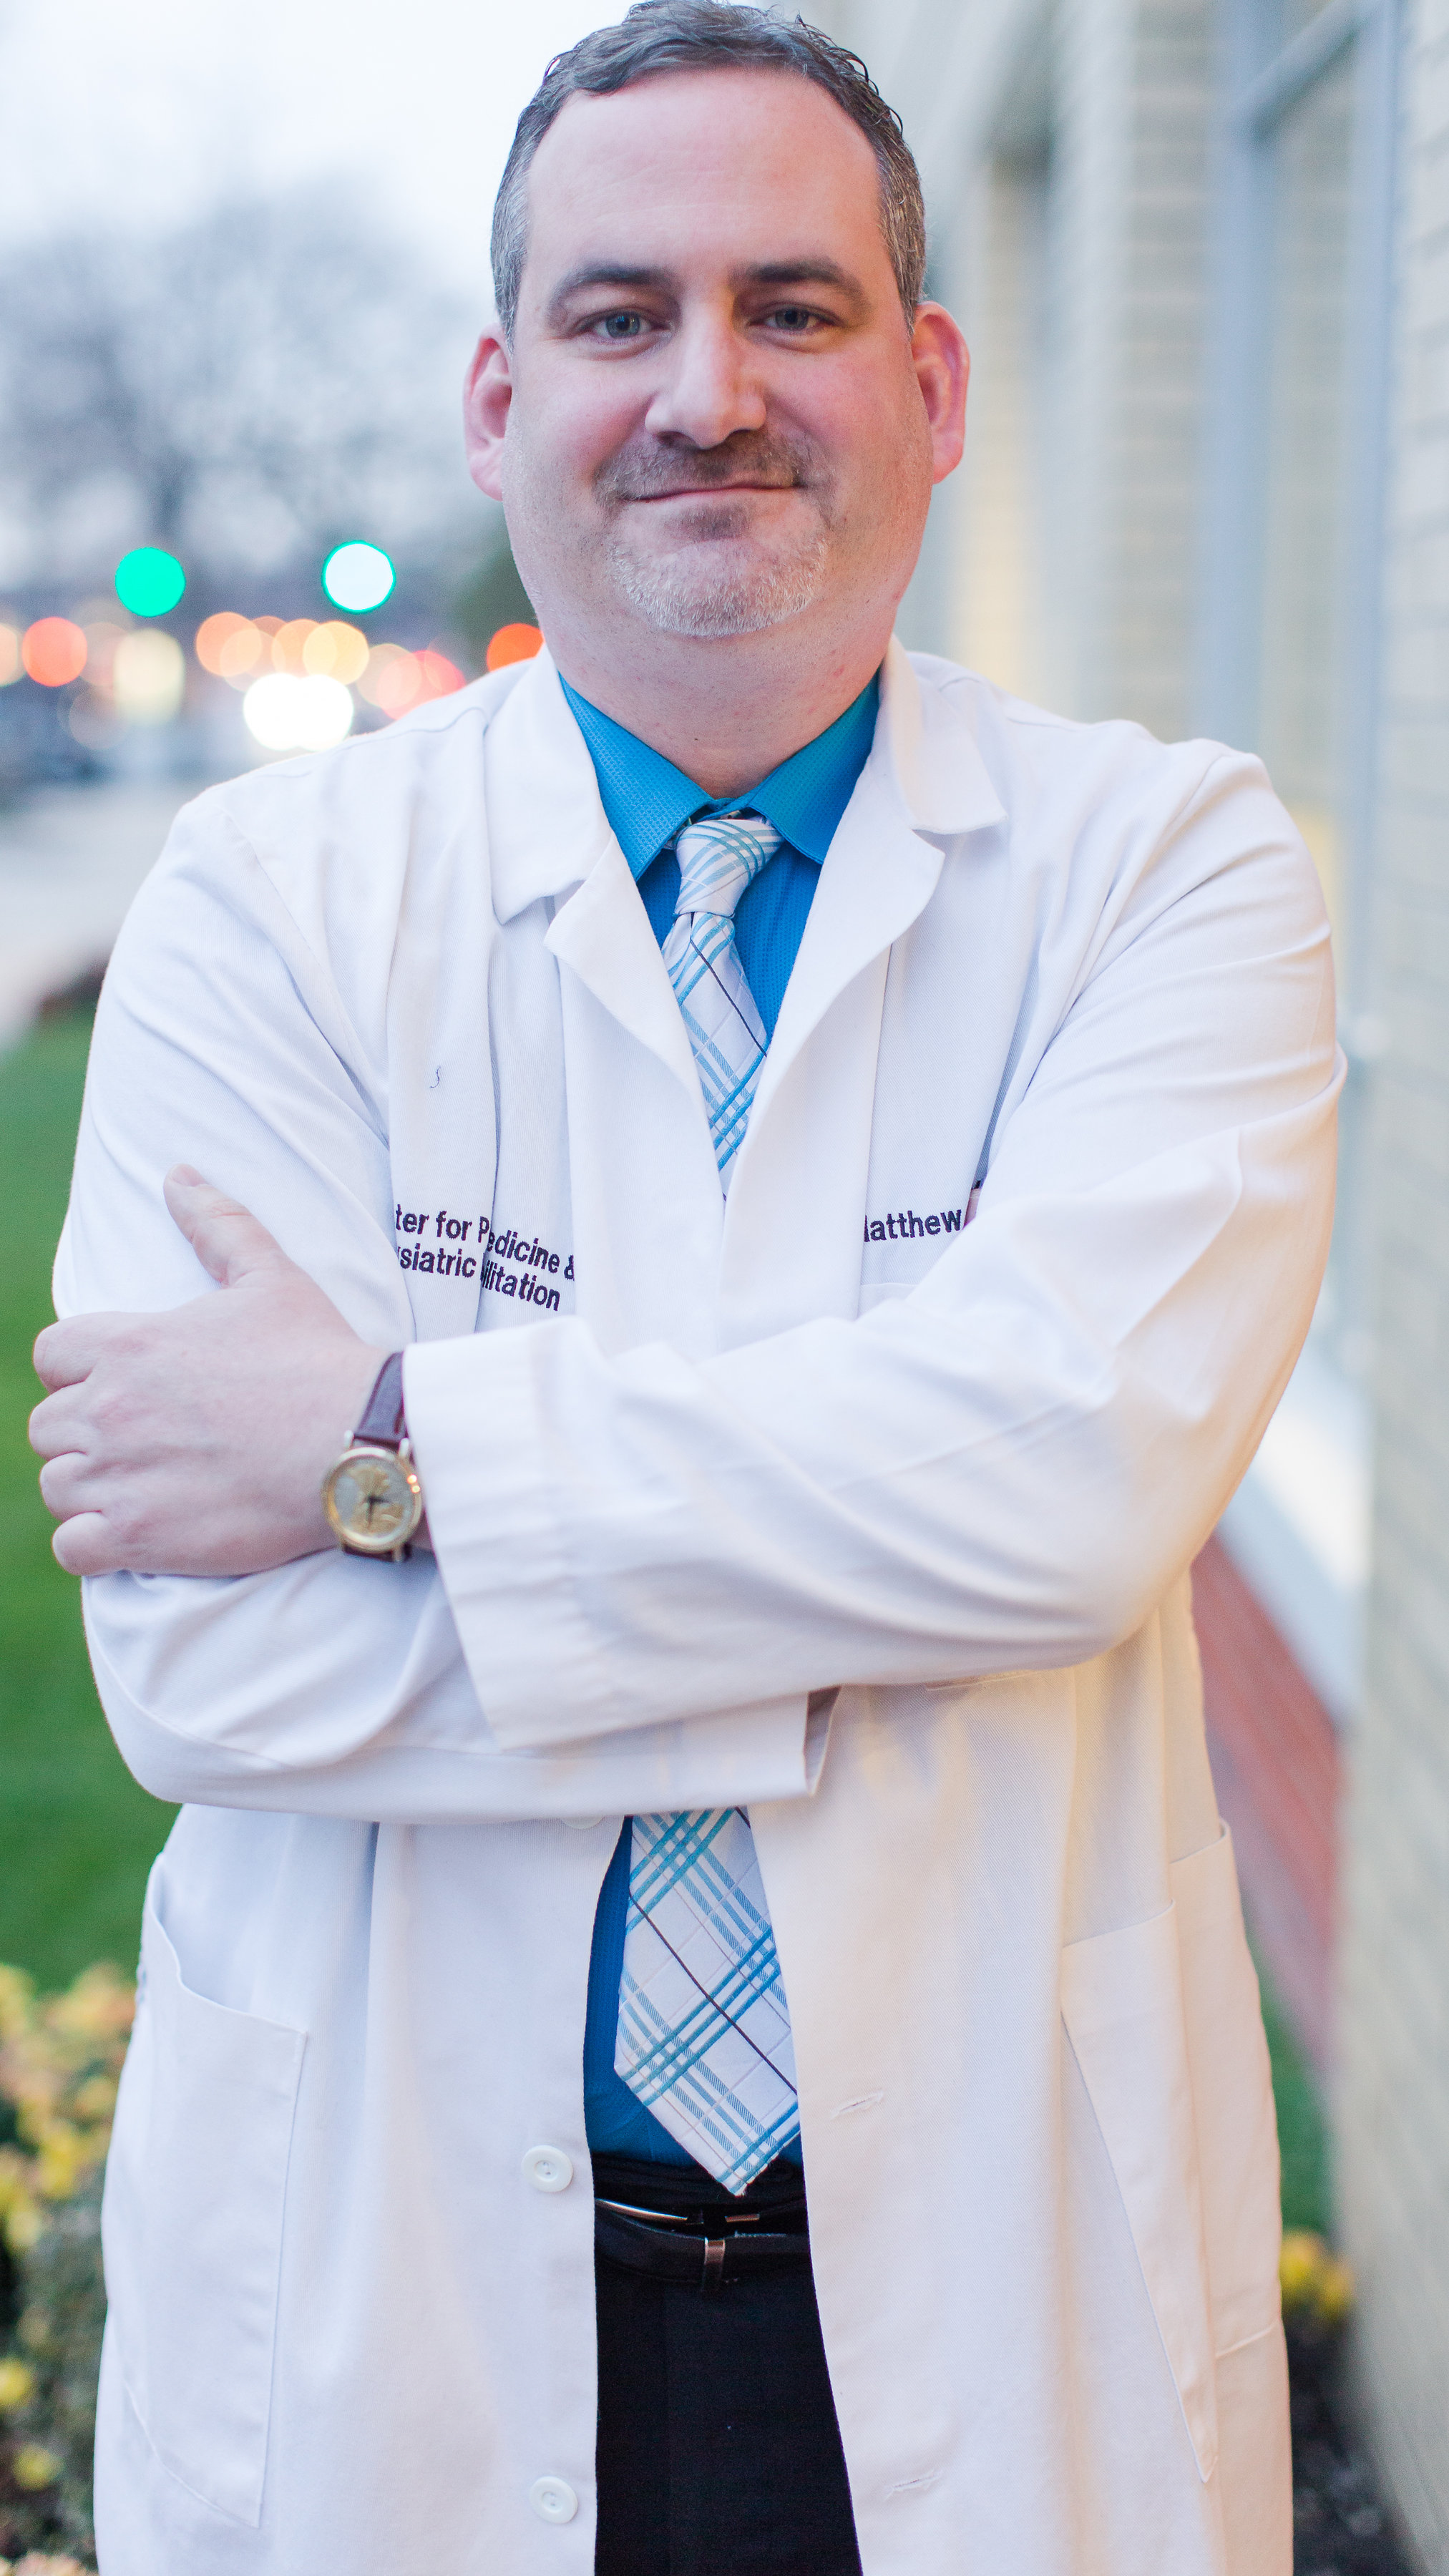 Dr. Matthew Kalter, M.D New York The Pain & Injury Doctor